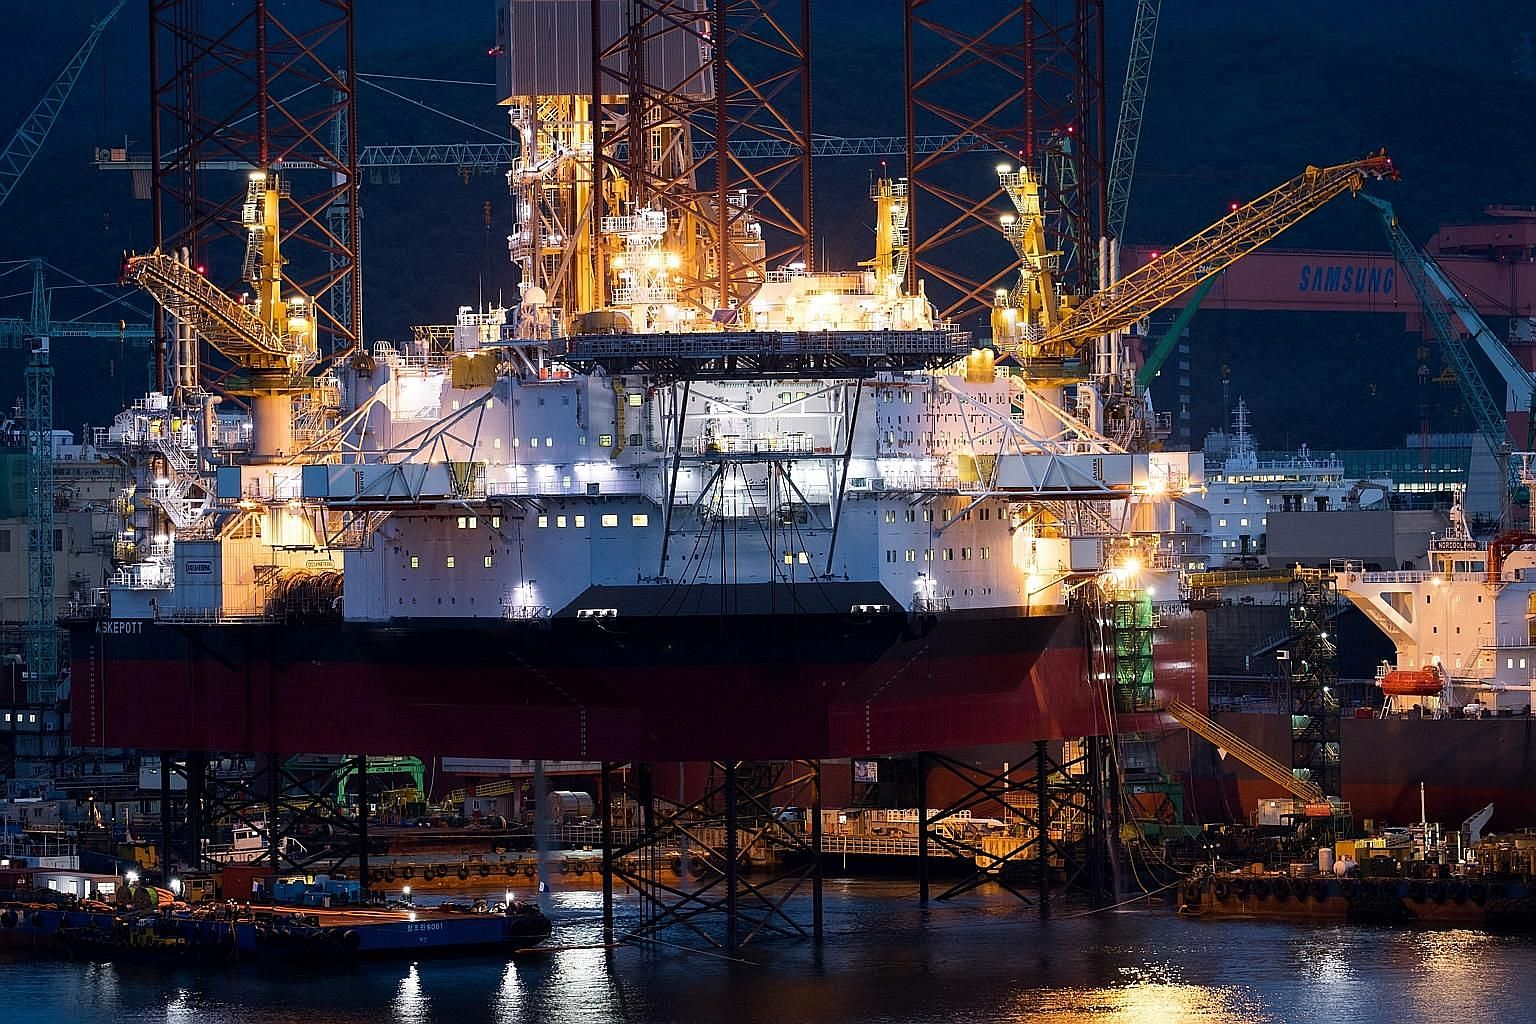 An oil rig at a shipyard in Geoje, South Korea. Key economic data releases in Asia this week include the country's first-quarter GDP and China's March industrial profit.